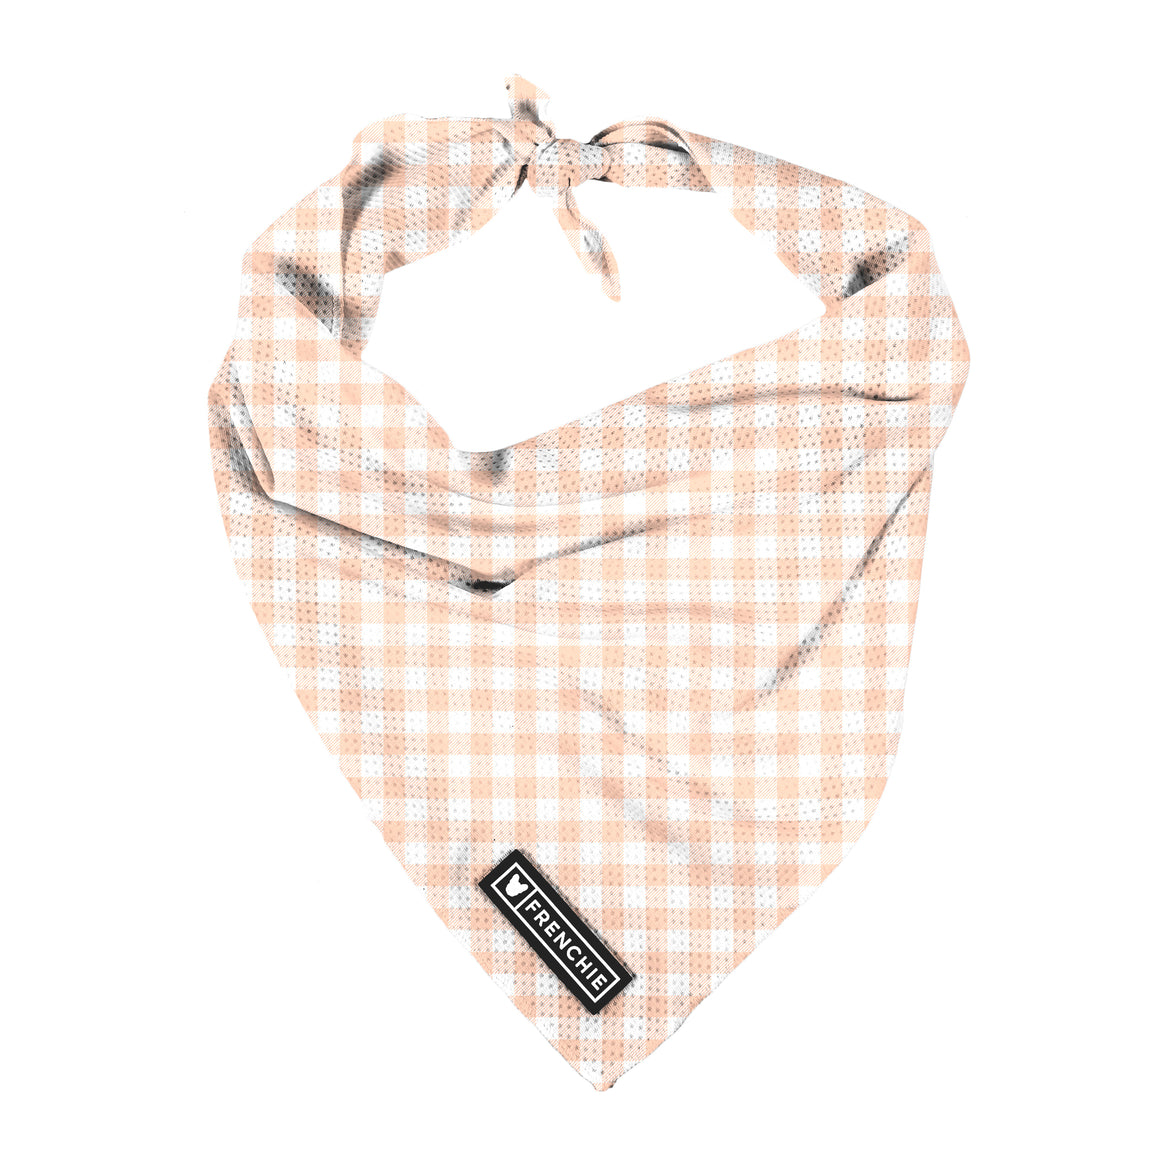 Frenchie Cooling Bandana- Peach Gingham - Frenchie Bulldog - Shop Harnesses for French Bulldogs - Shop French Bulldog Harness - Harnesses for Pugs